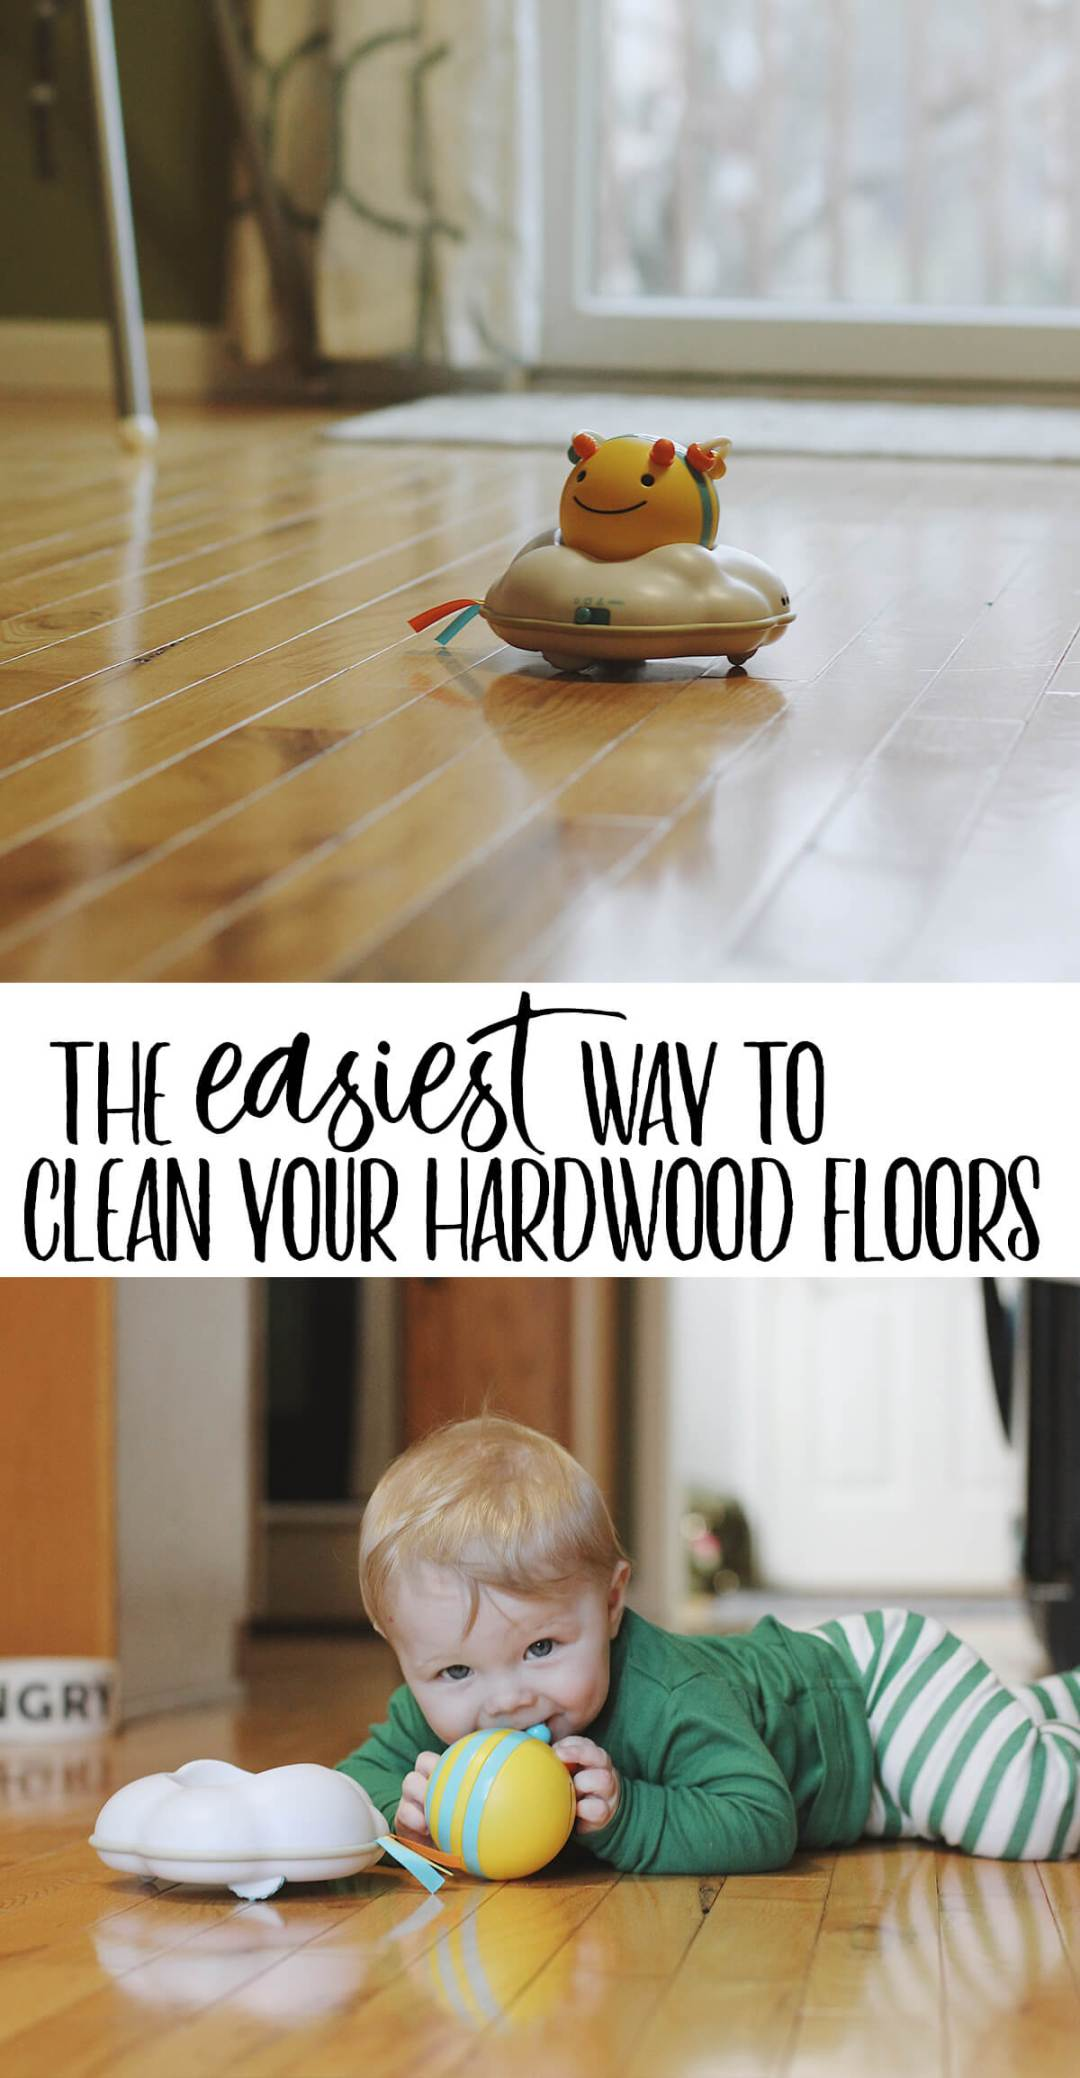 The Easiest Way to Clean Your Hardwood Floors